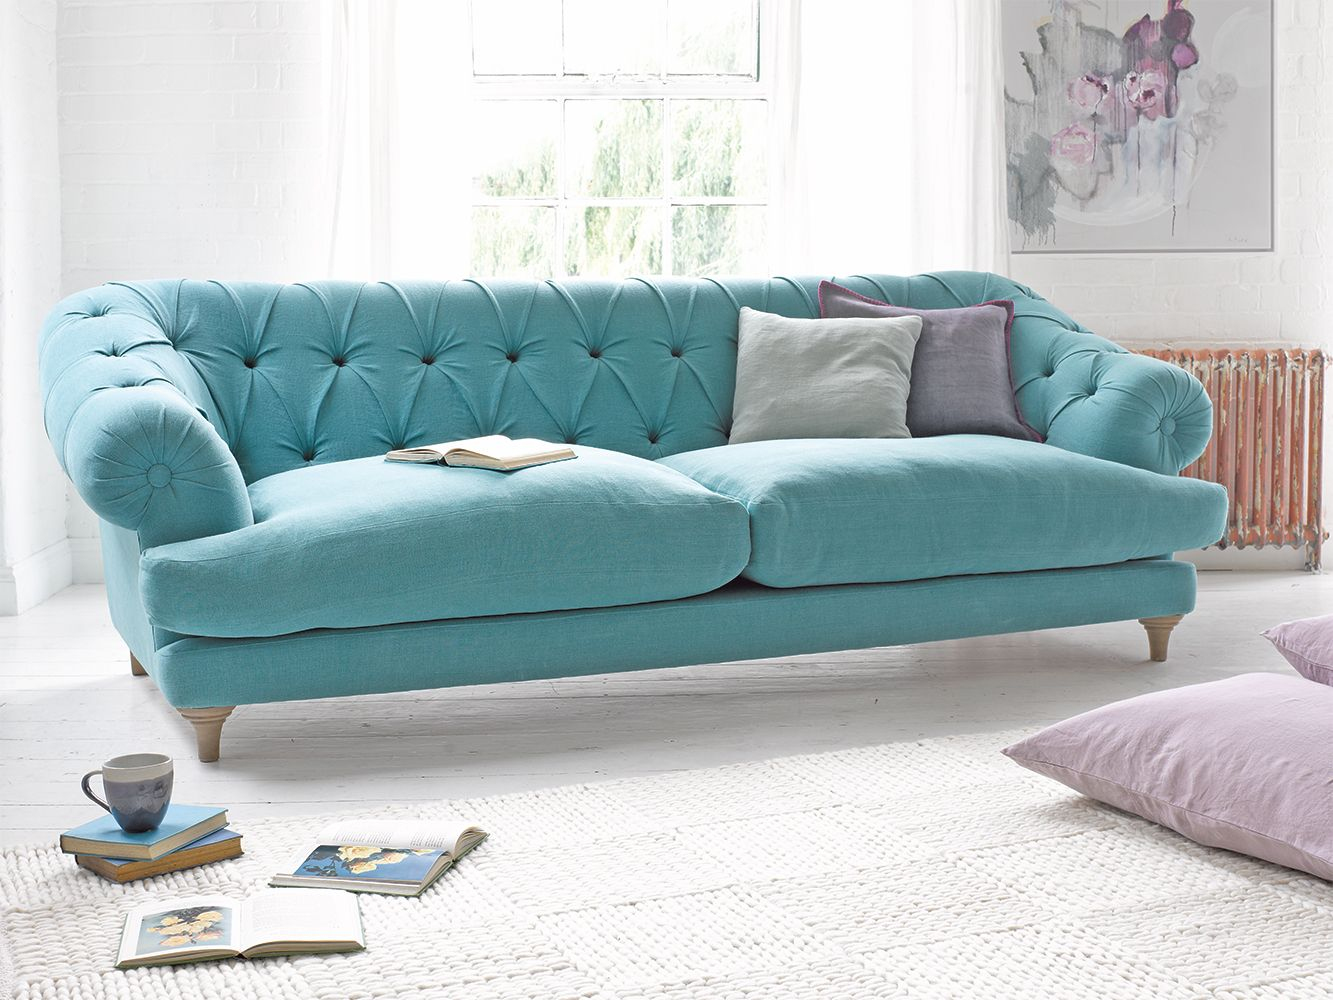 Bagsie Sofa Chesterfield style sofa, Sofa bed uk